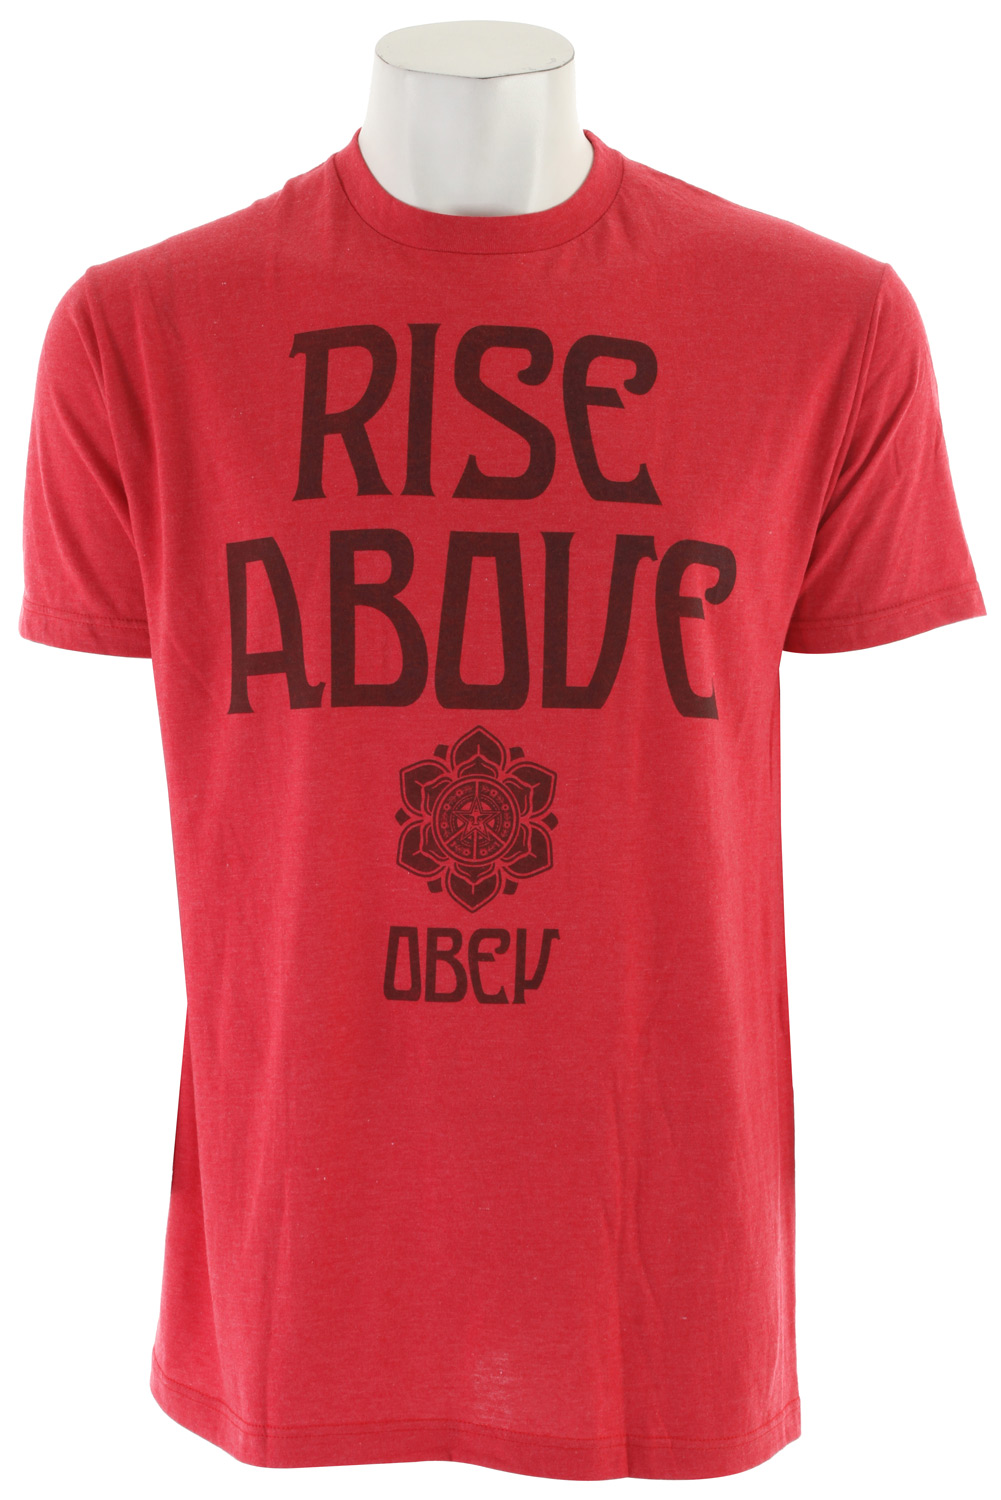 Key Features of the Obey Rise Above 50/50 T-Shirt: Lightweight, slim fit tee with inset rib crew neck Heather pattern 50% cotton/50% polyester - $21.95